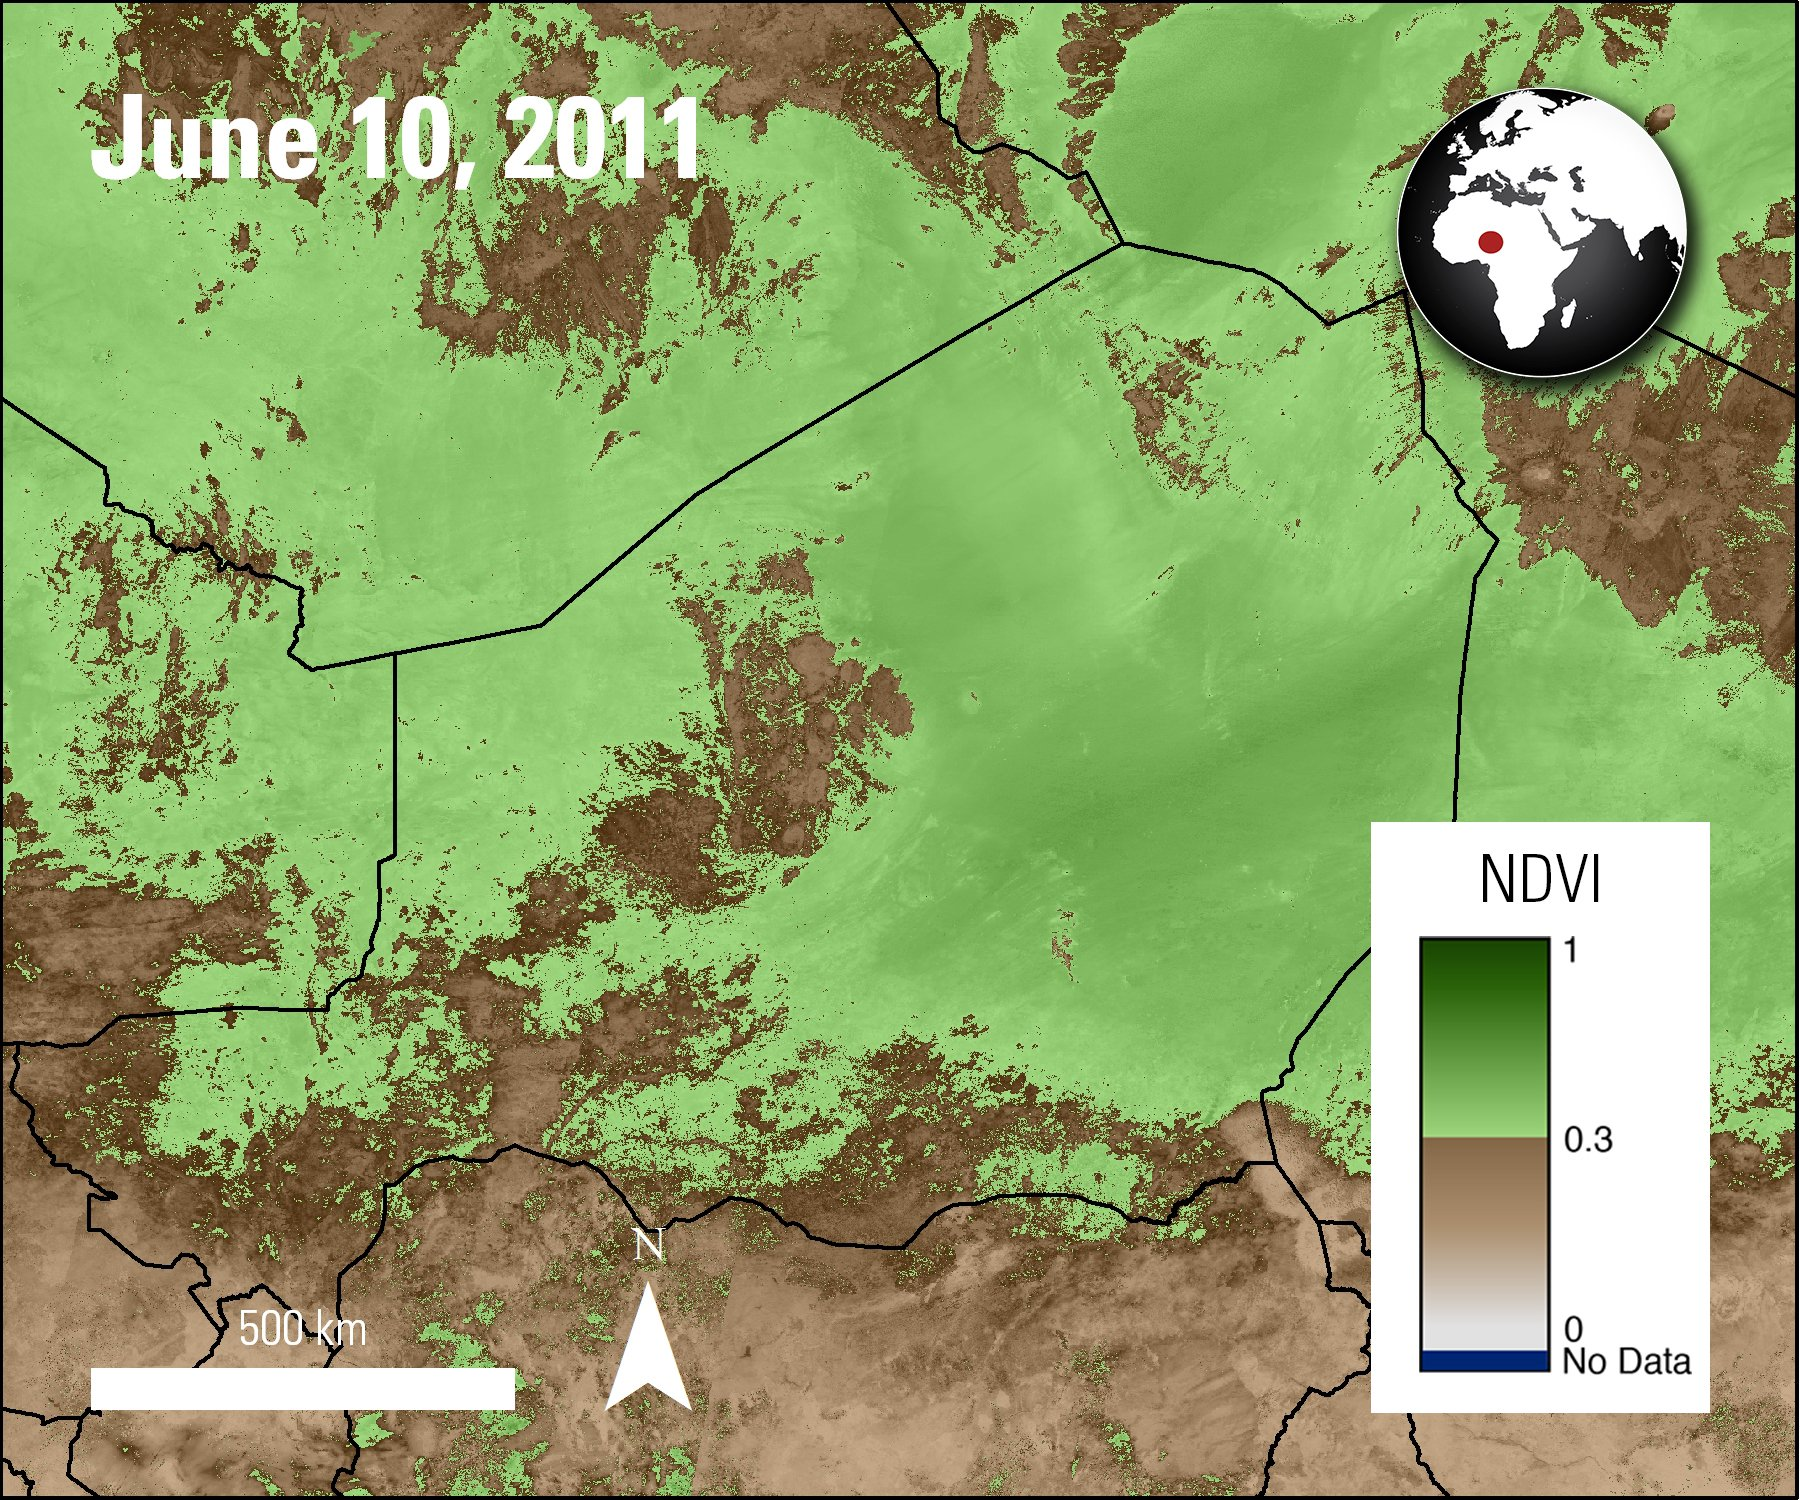 MODIS Terra MODIS NDVI calculated from Surface Reflectance data over part of Africa, acquired June 10, 2011.